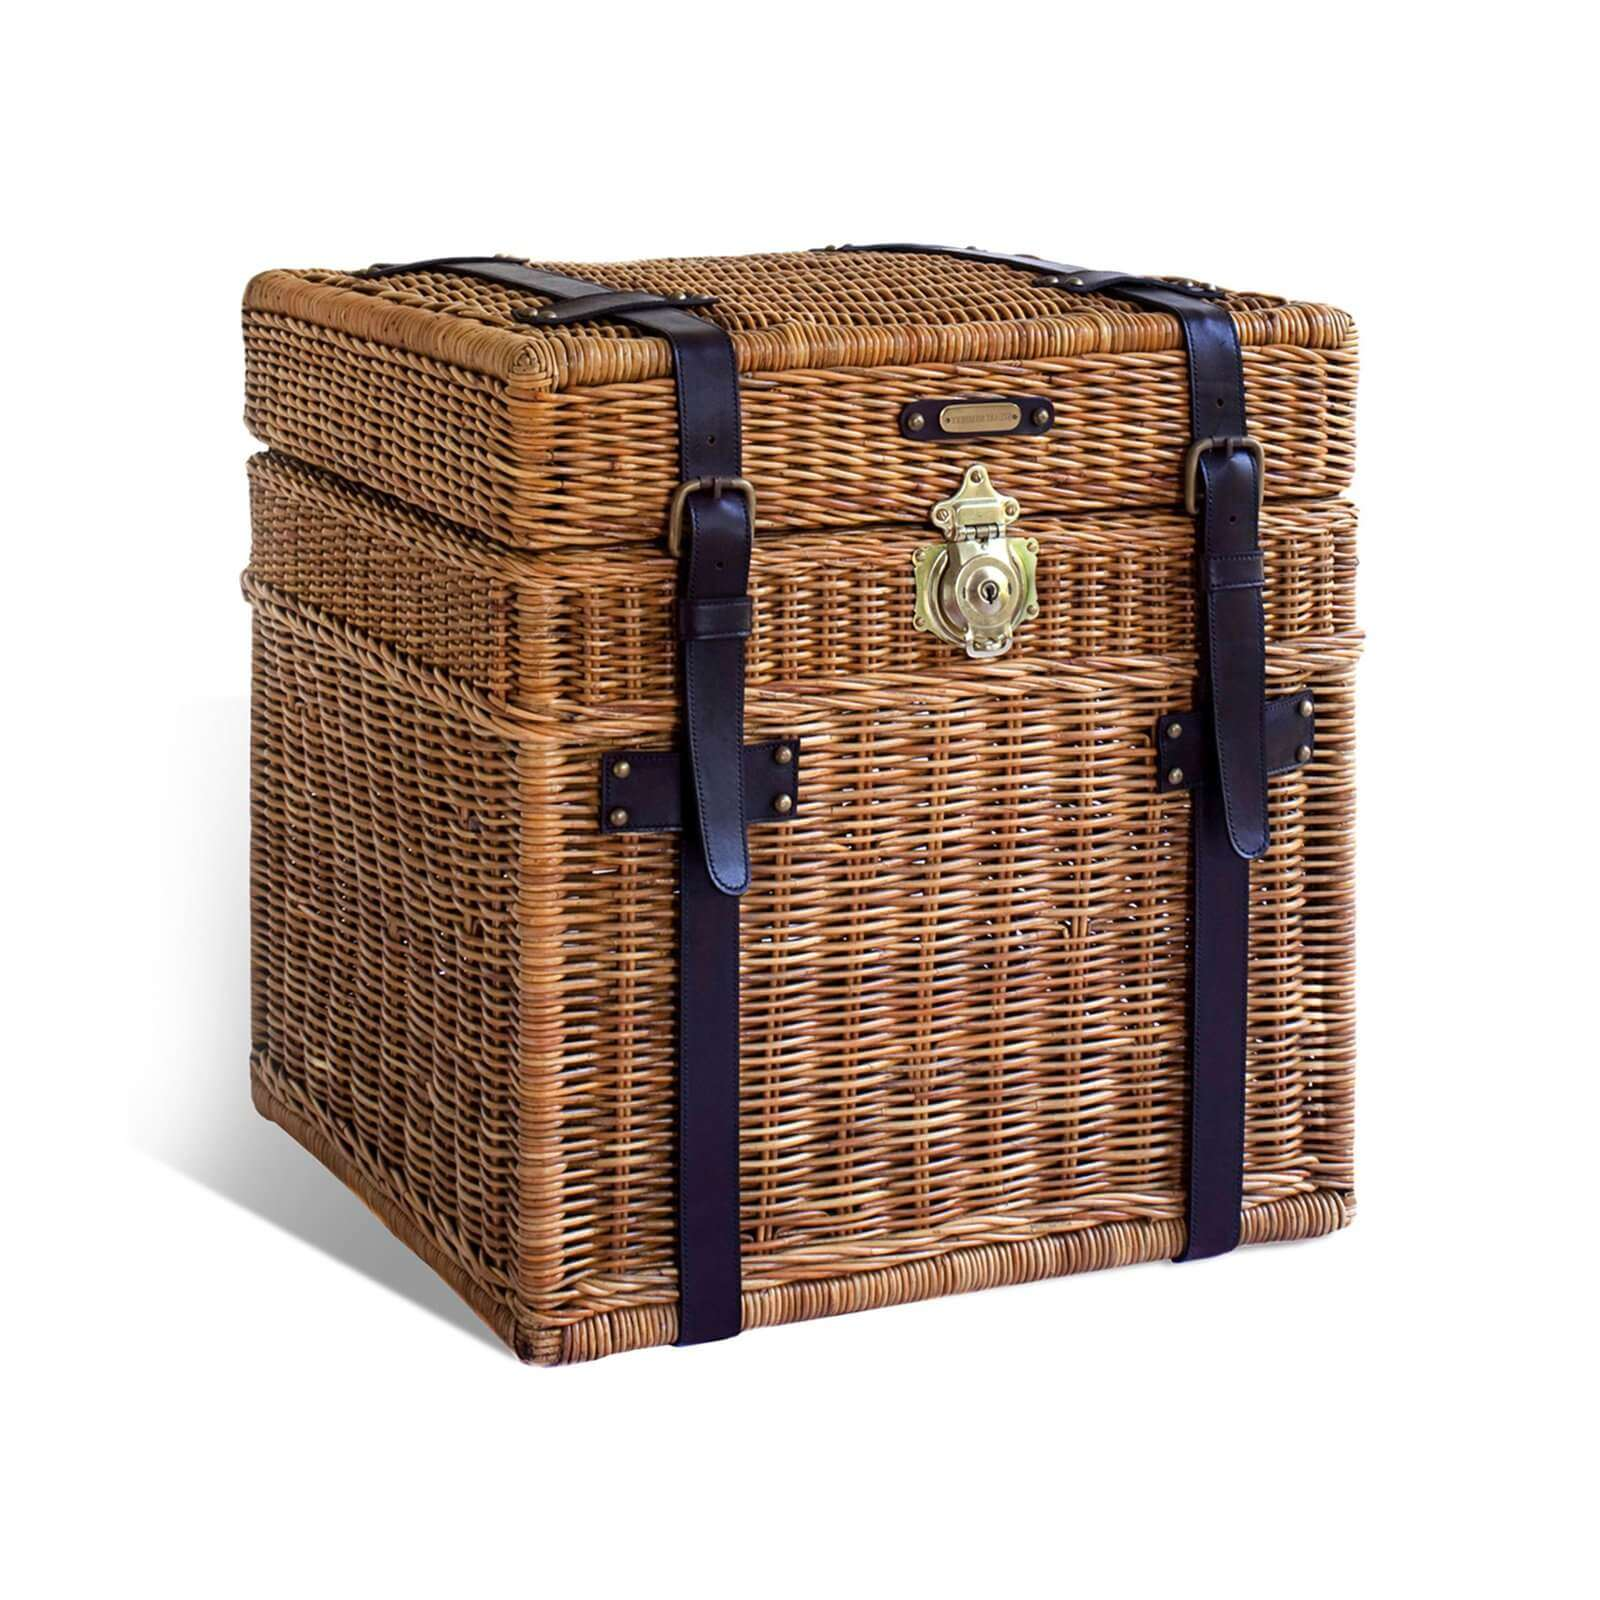 RATTAN SIDE TRUNK 1 - STUART MEMBERY HOME COLLECTION